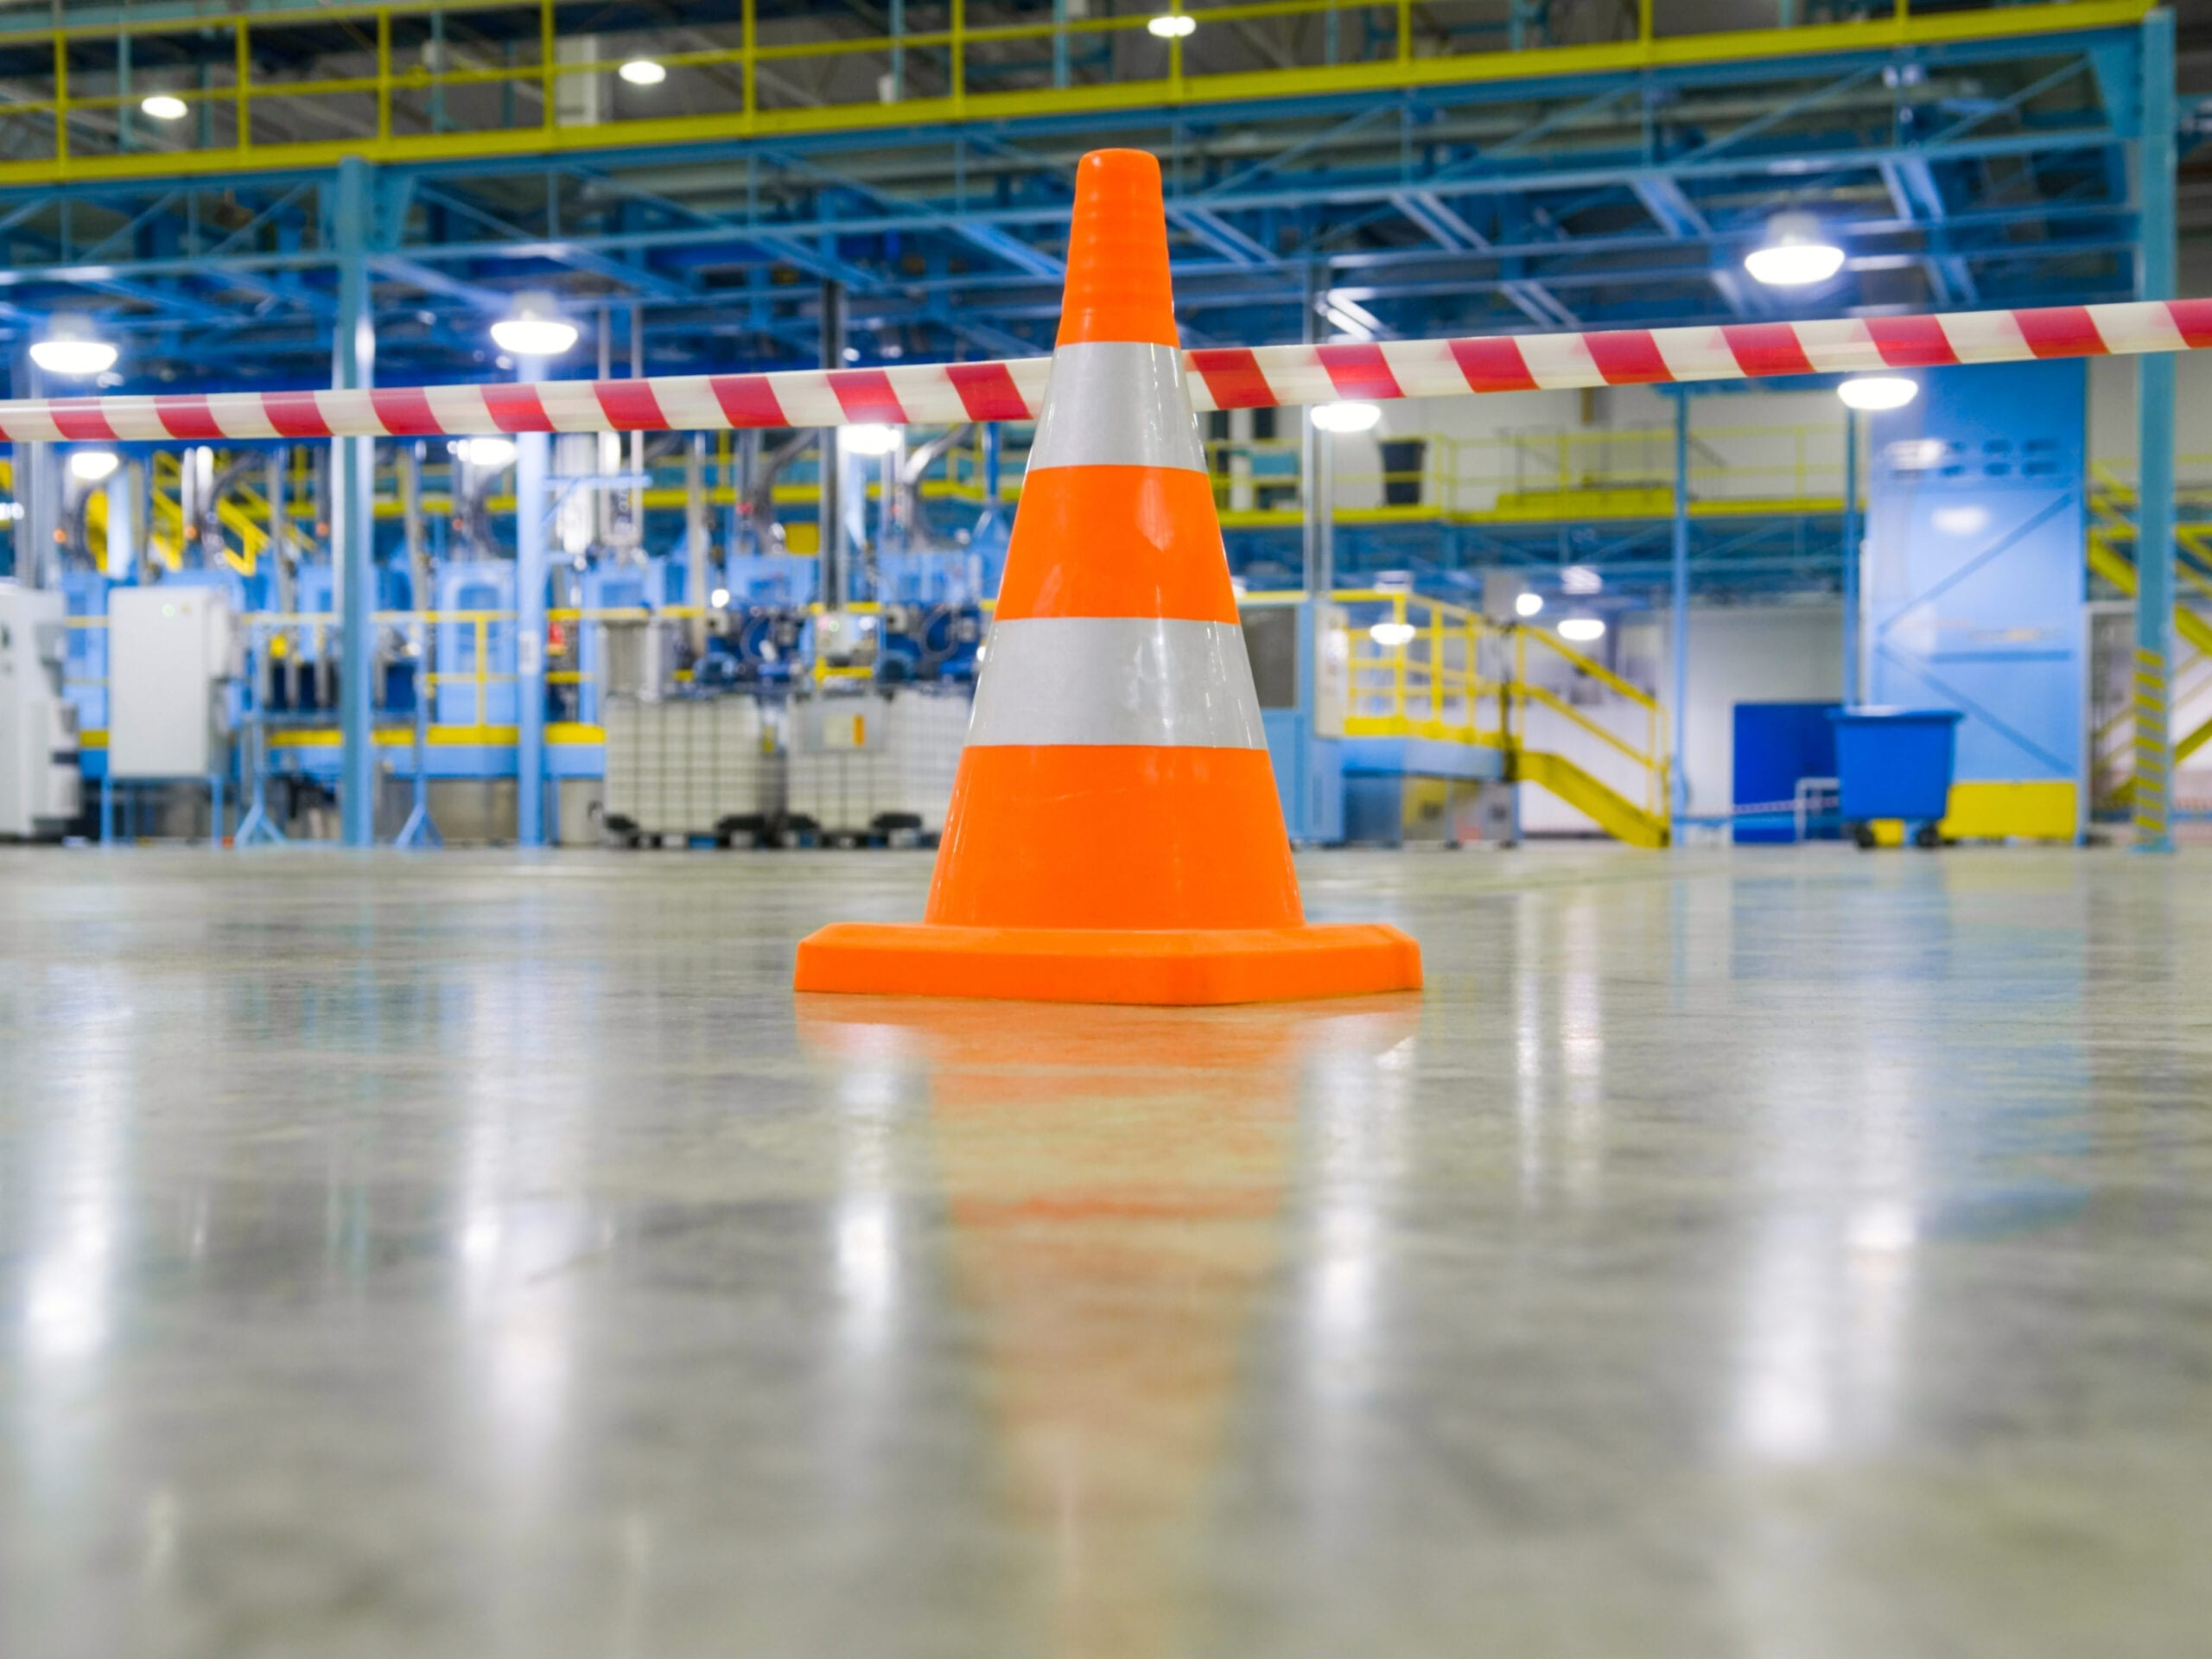 A safety cone in a manufacturing facility. RDM has extensive experience defending premises liability claims.